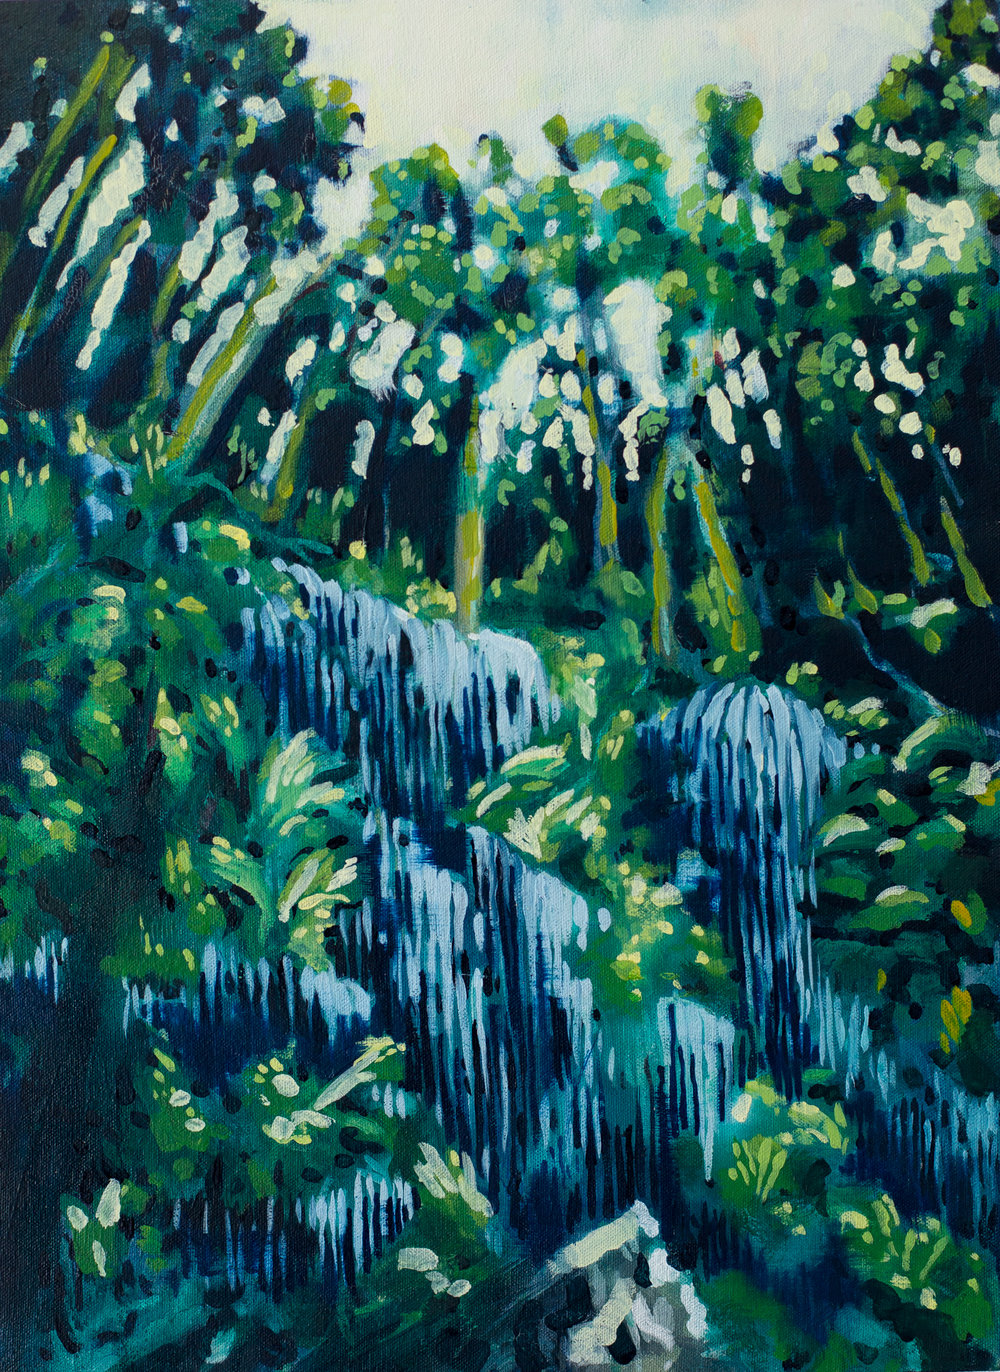 ' Buitengracht' , Leila Walter, Oil on canvas, 400 x 540 x 40 mm, R 4340.00 excl. vat.